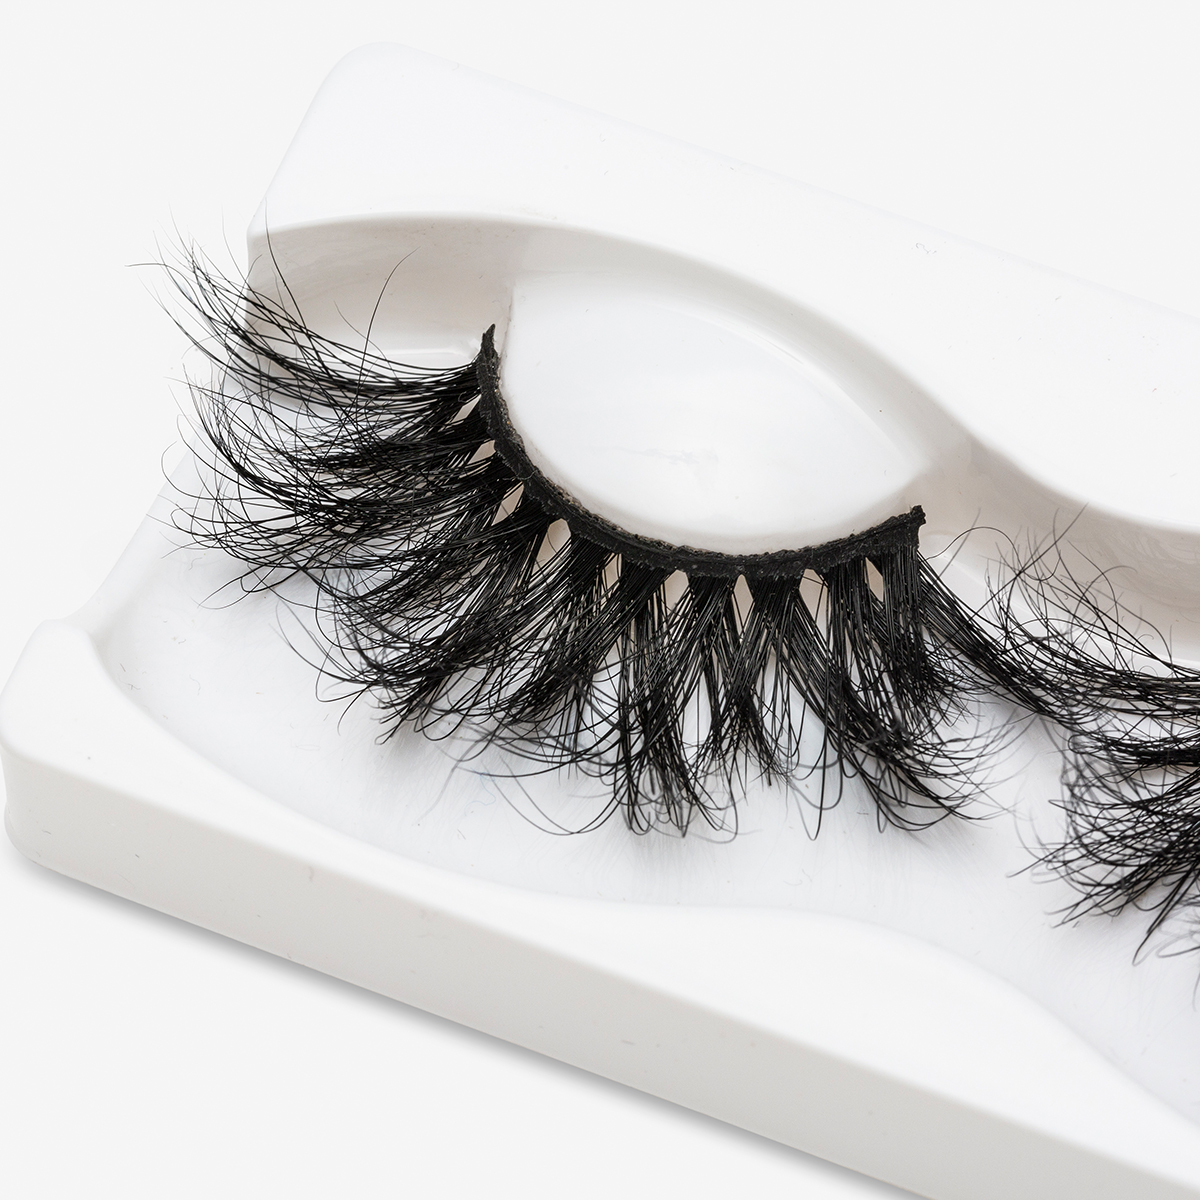 Image 4 - SEXYSHEEP 25mm 5D Mink Eyelashes 100% Cruelty free Lashes Handmade Reusable Natural Eyelashes Popular False Lashes Makeup-in False Eyelashes from Beauty & Health